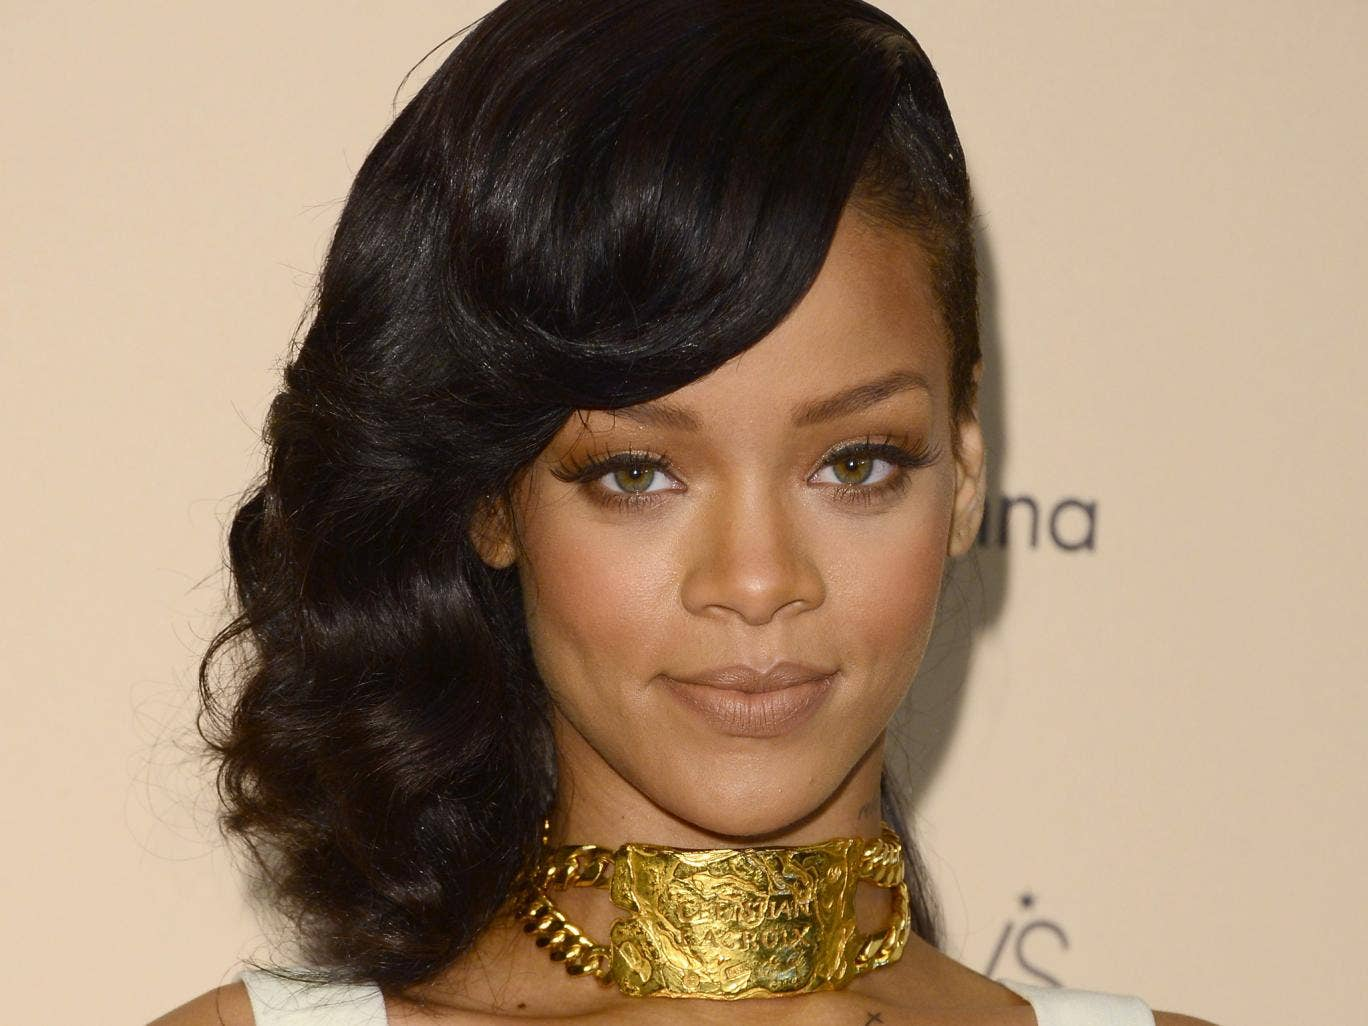 Singer Rihanna has collaborated with River Island to create a collection for the high street retailer